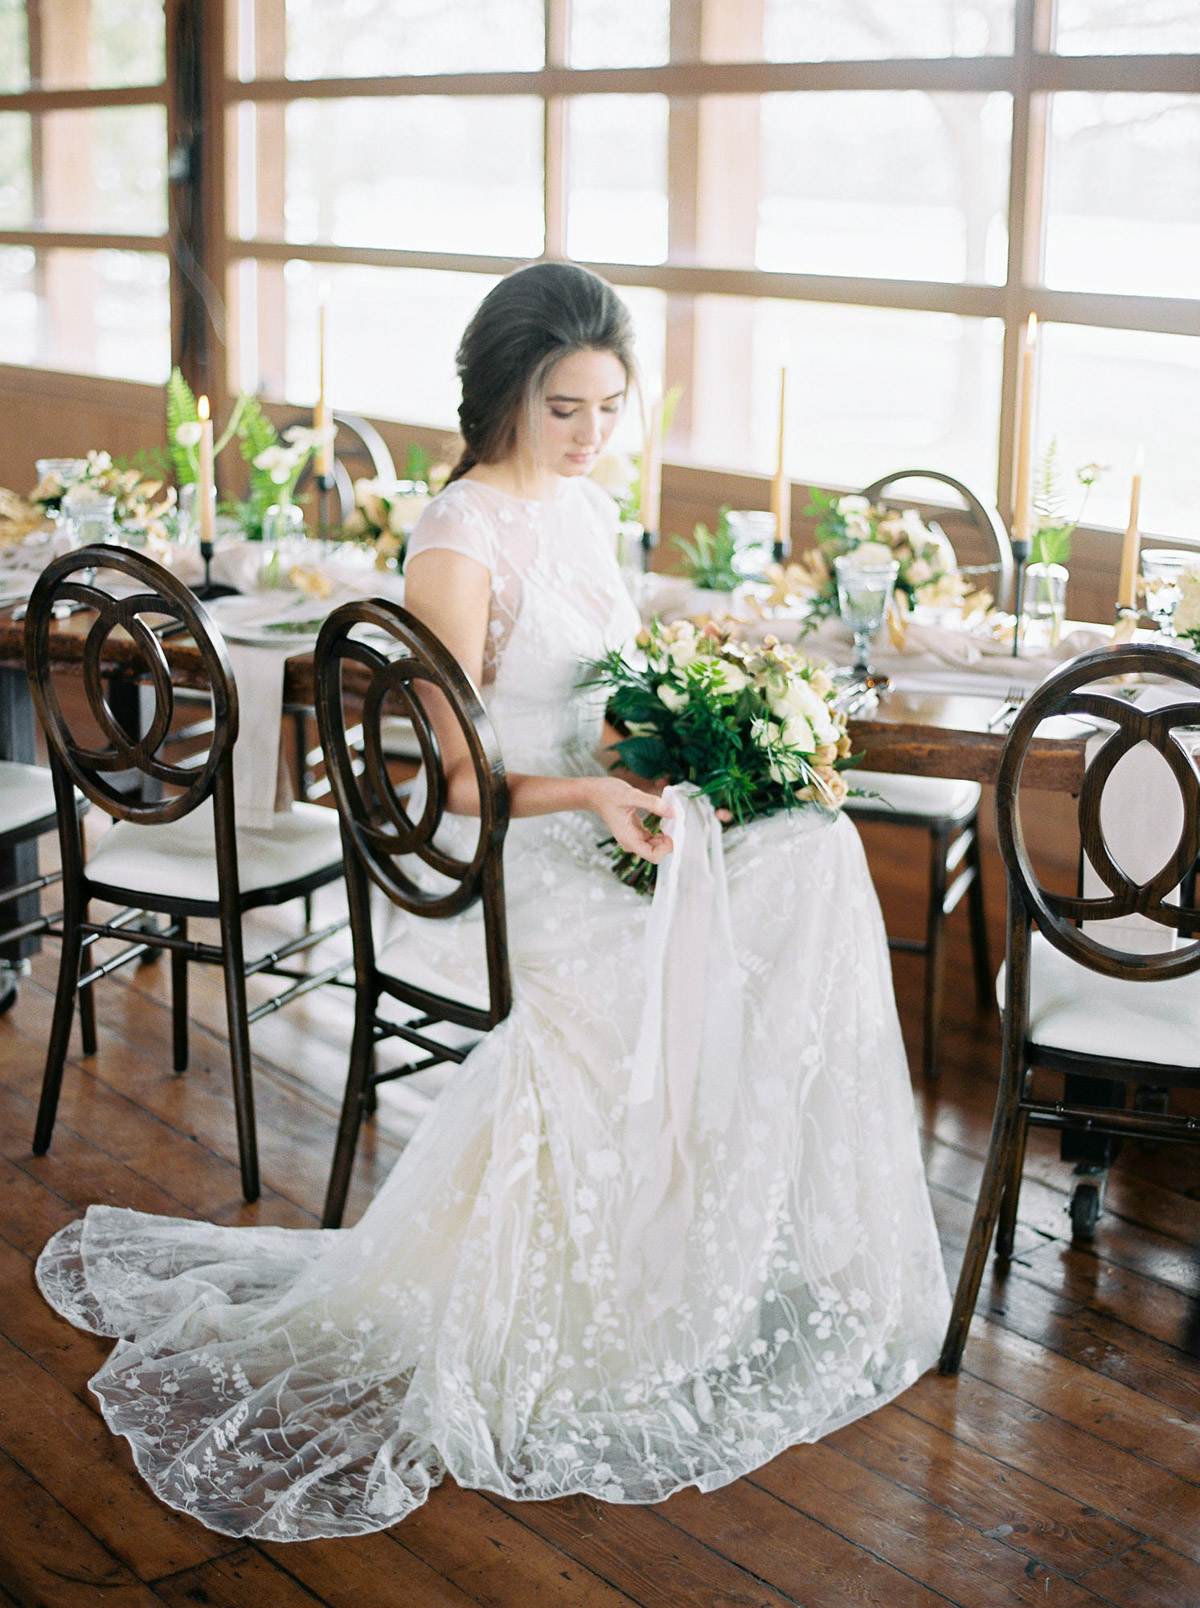 will-reid-photo-vineyard-bride-swish-list-kurtz-orchards-market-niagara-on-the-lake-wedding-editorial-20.jpg